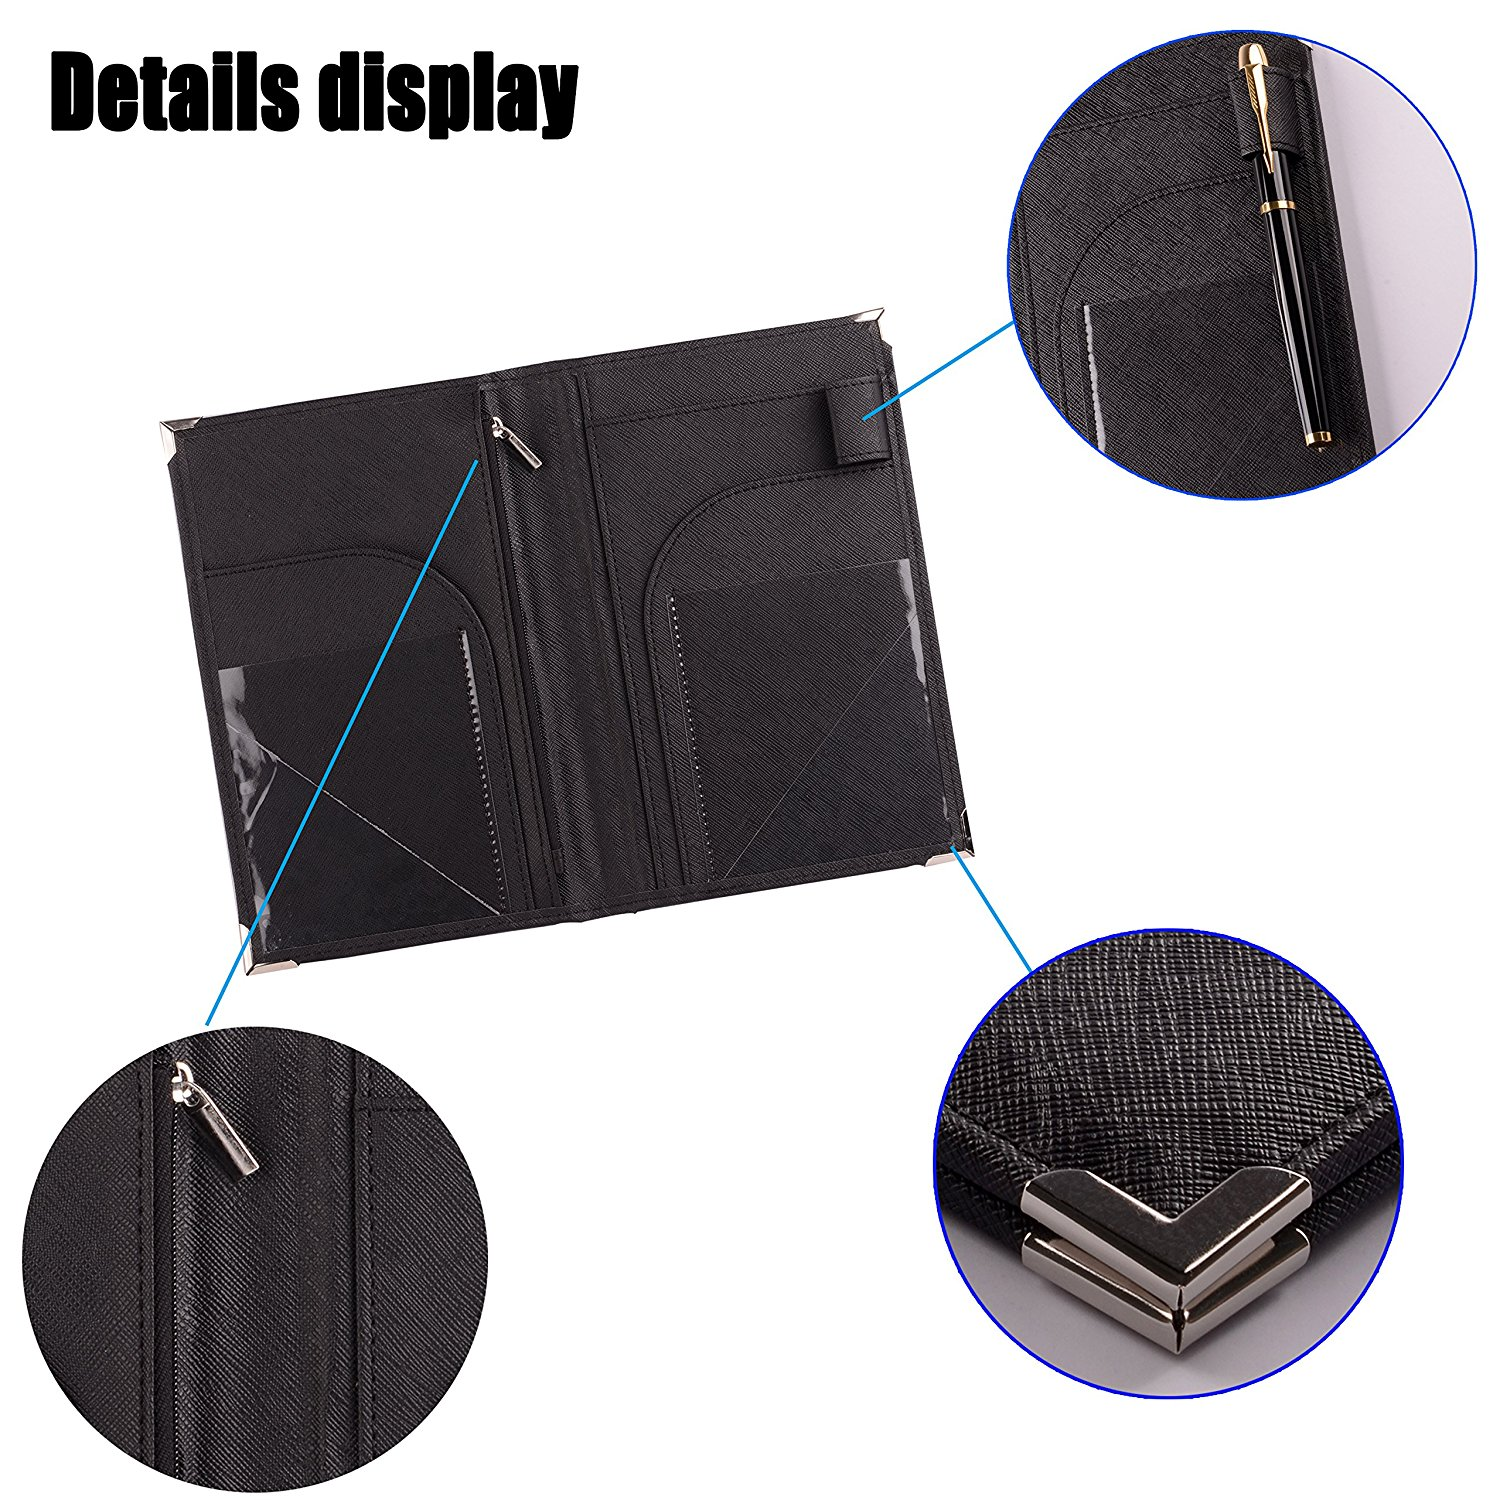 5.2''*8'' High grade Leather Hotel Servers Book ,Server Waiter Book Organizer Restaurant